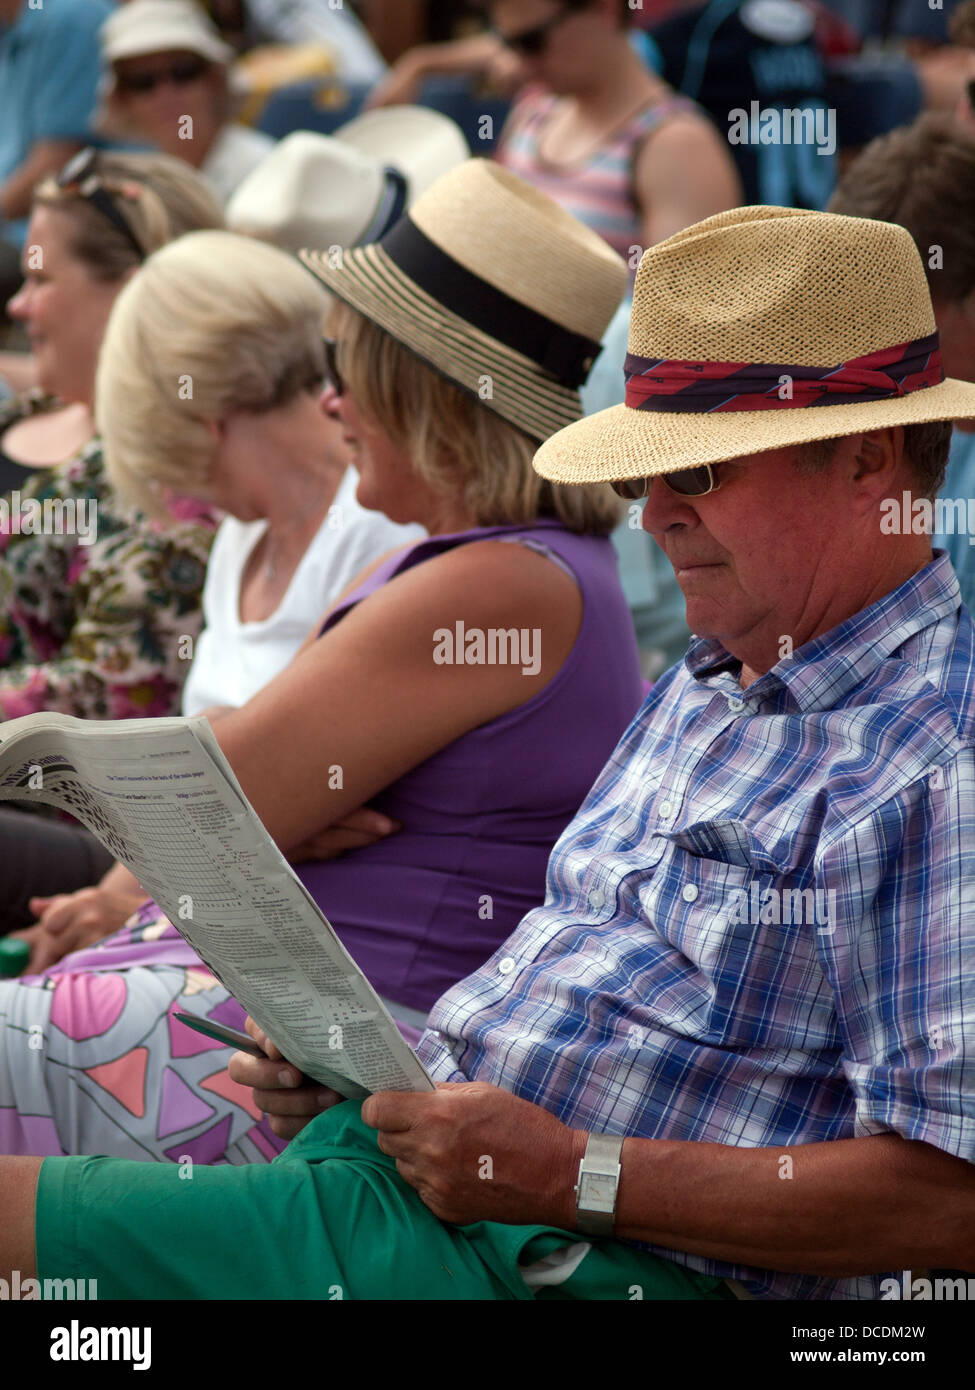 Reading a newspaper at a cricket match Stock Photo